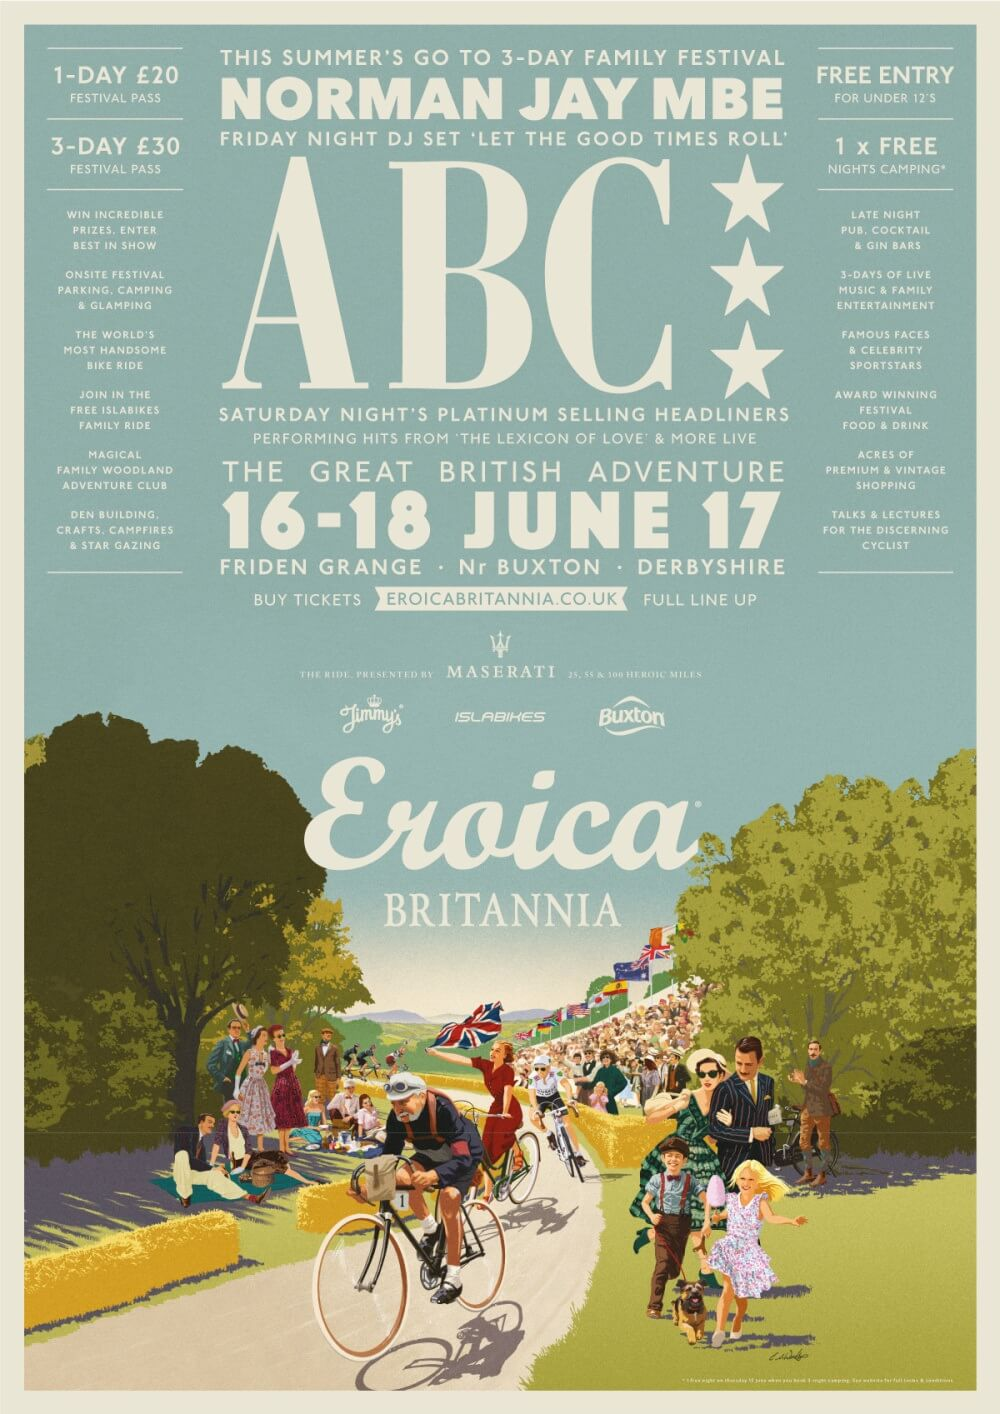 Poster for Eroica Brittania